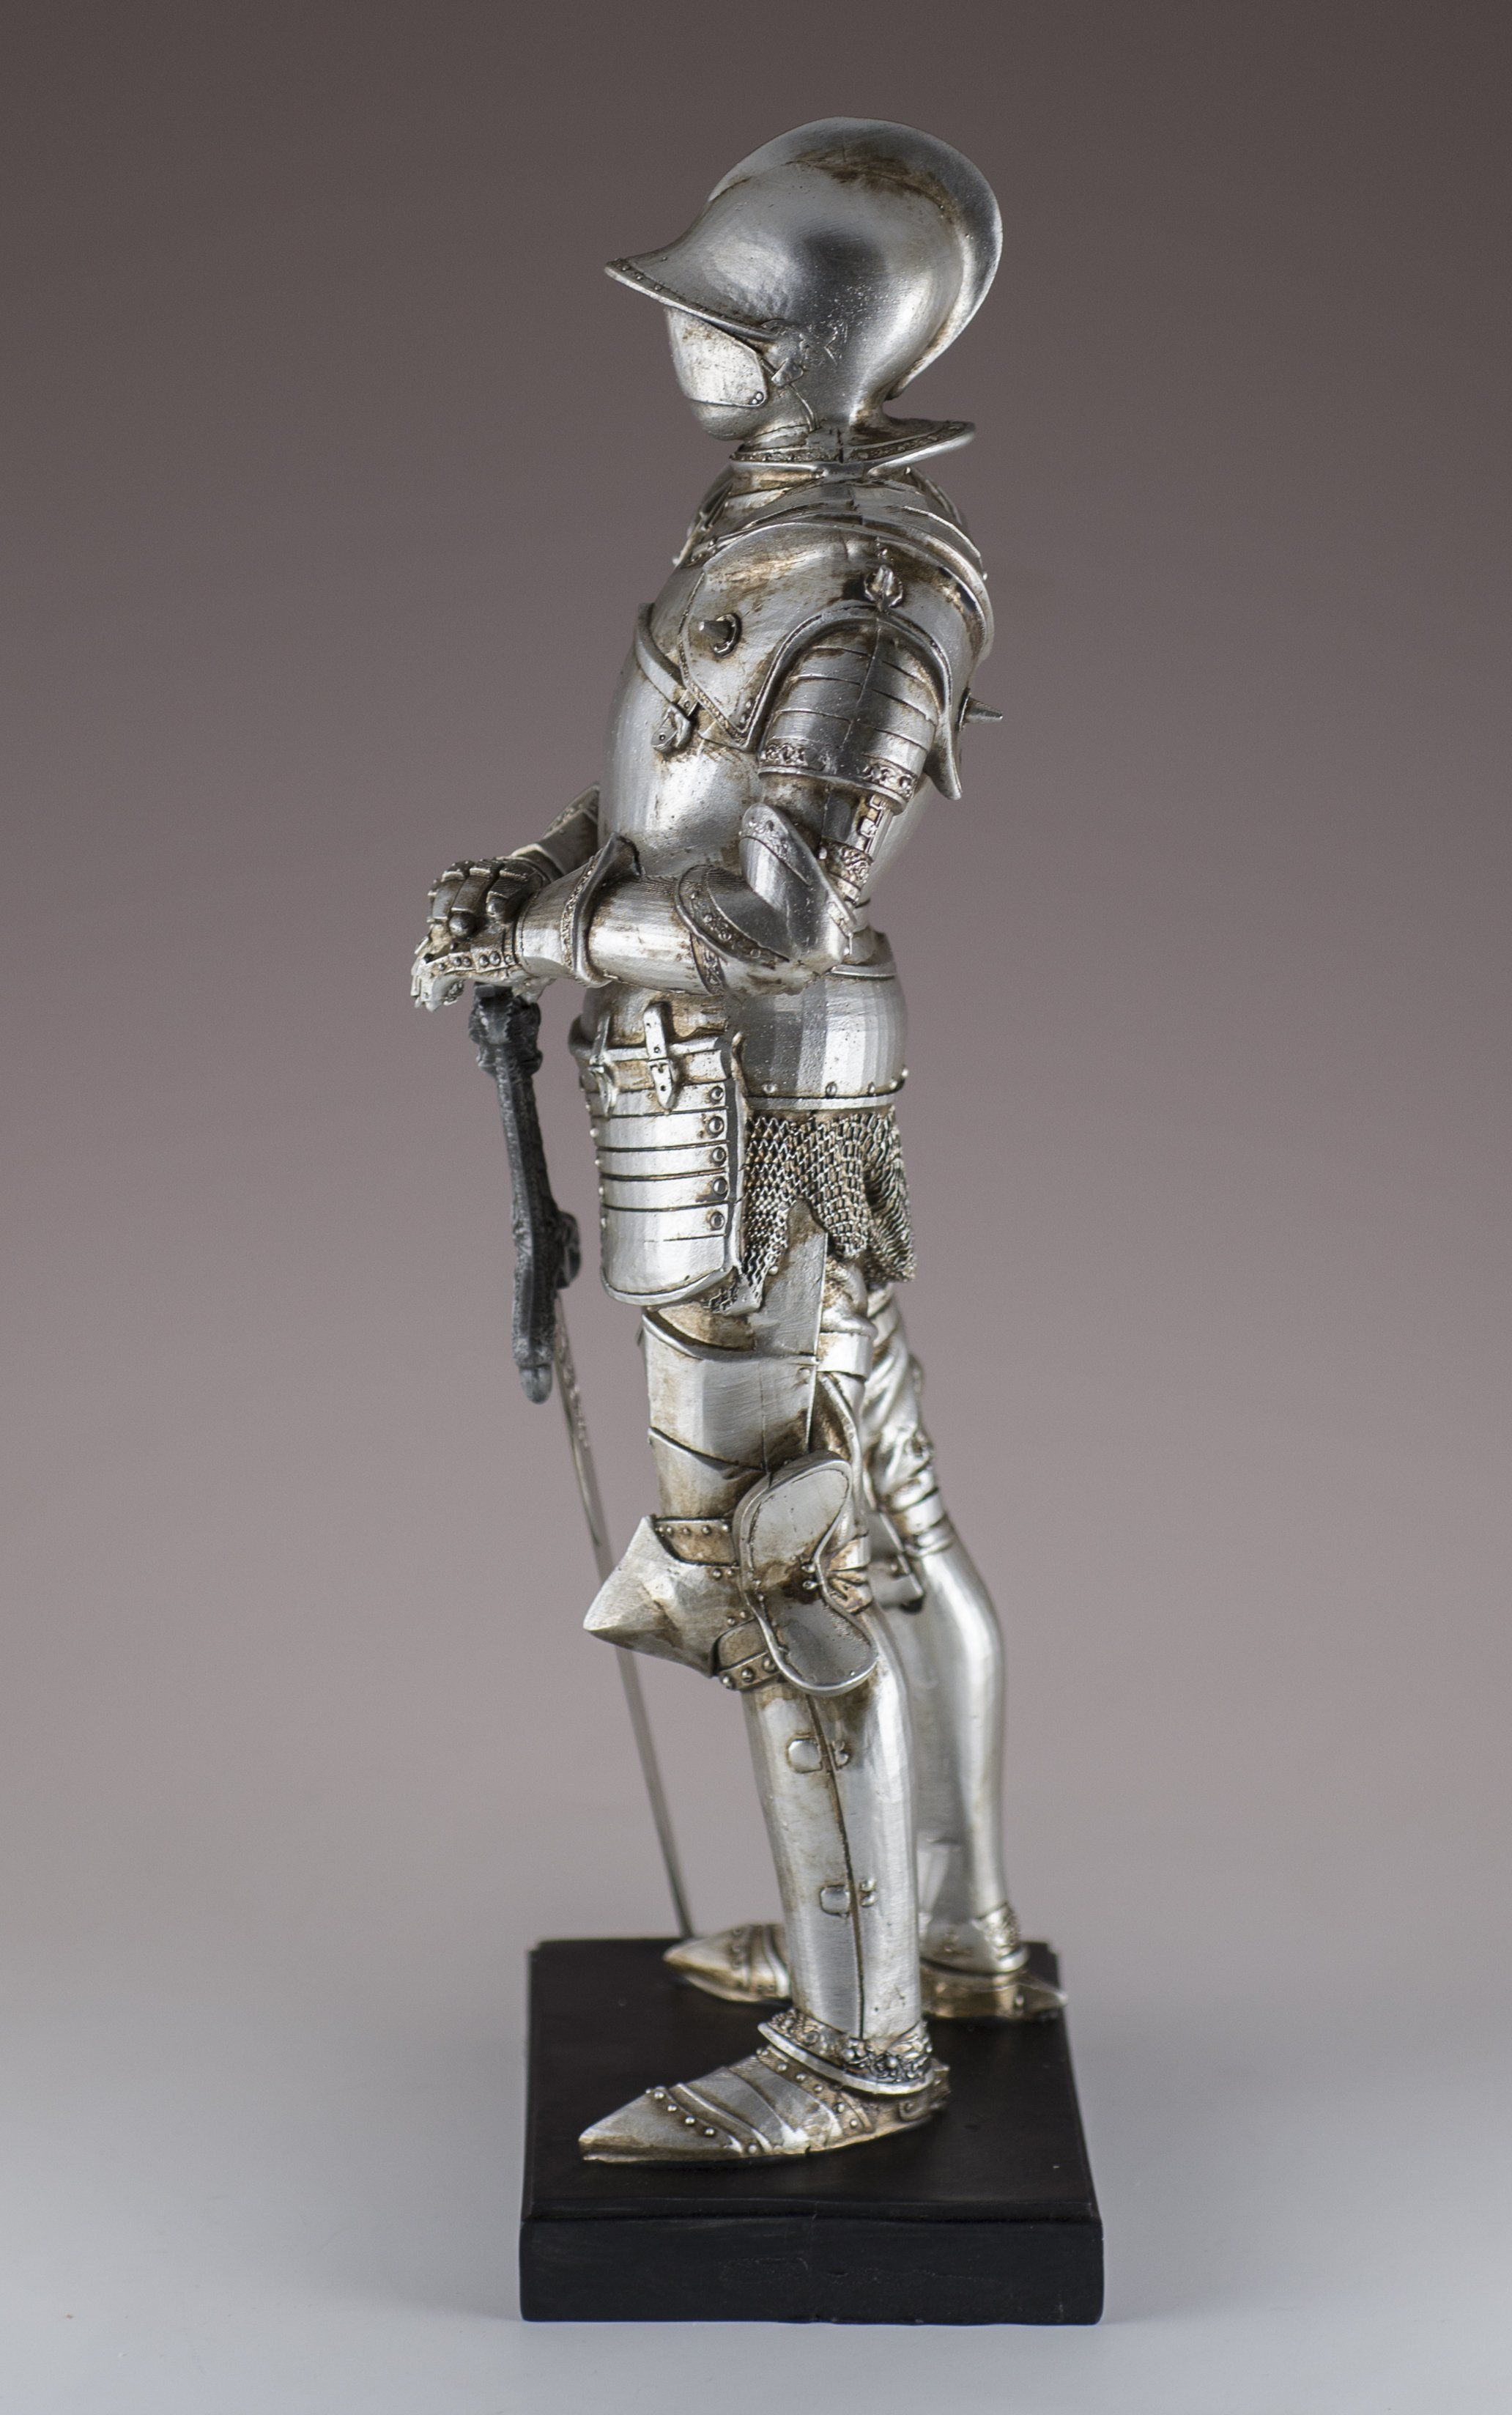 Medieval Knight In Silver Armor With Sword Figurine Statue Highly Detailed Resin Height 11 5 Inches Including Base Widt Medieval Armor Armor Drawing Armor